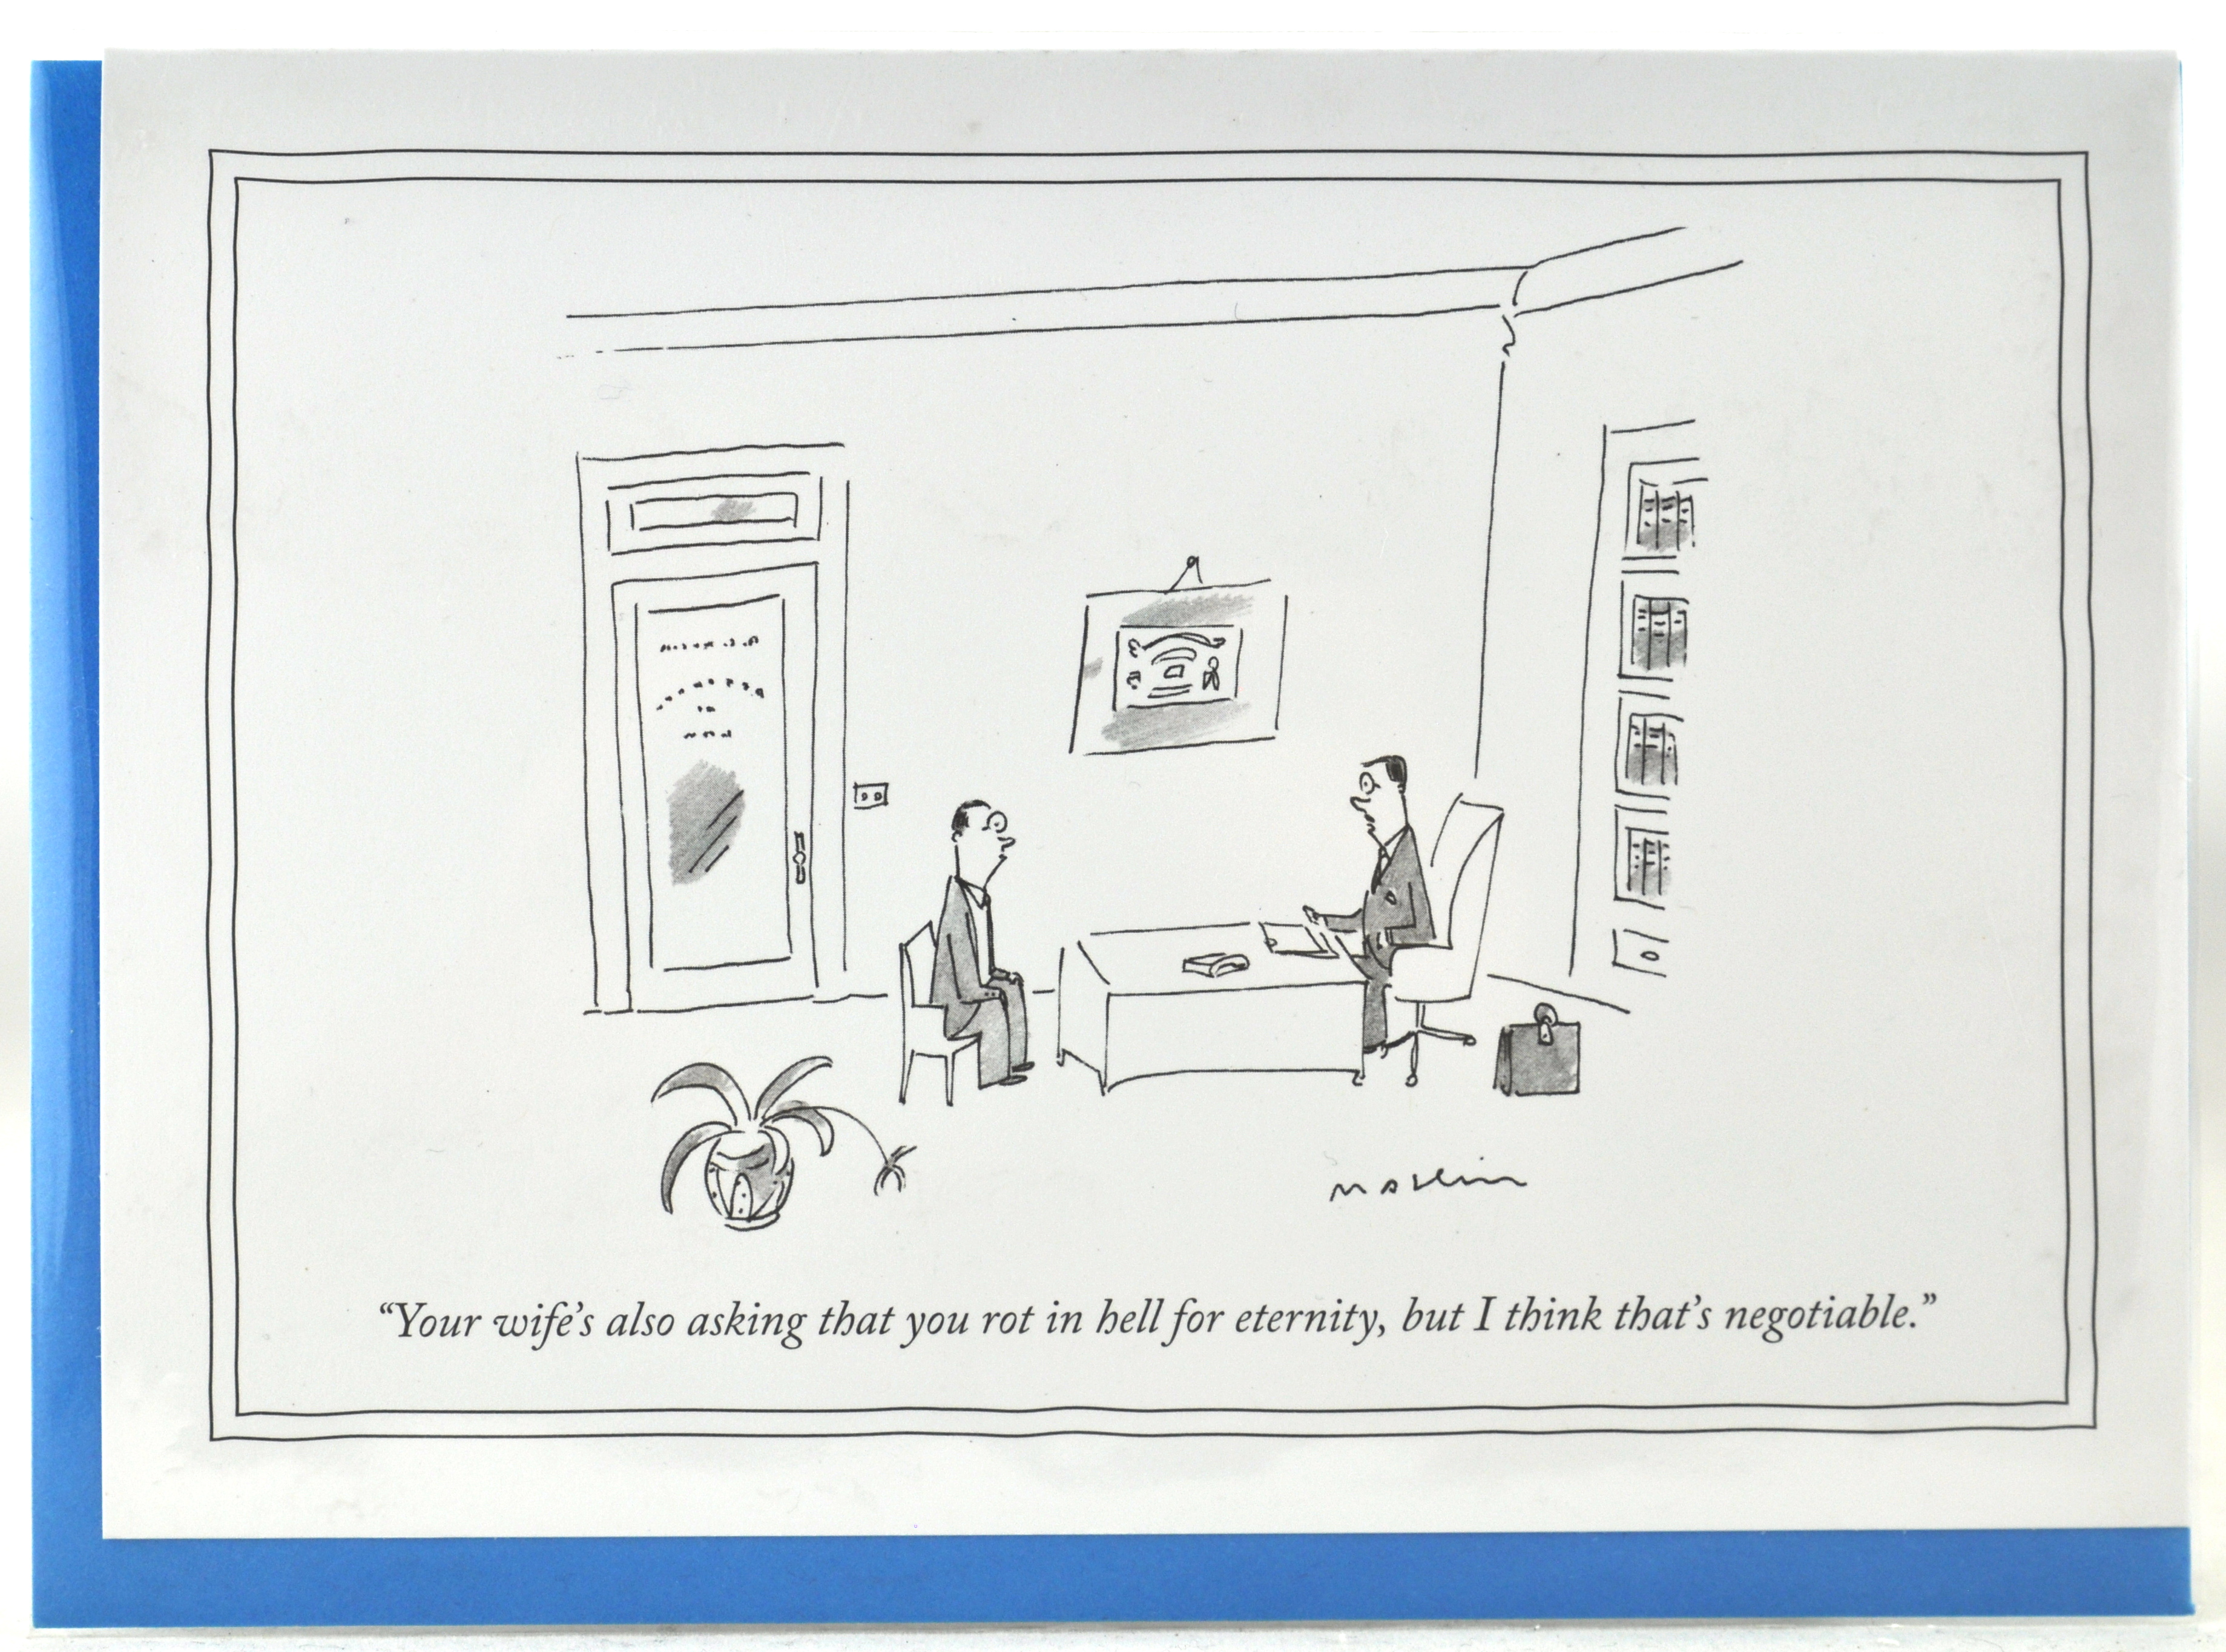 New yorker card rot in hell for eternity new yorker greeting new yorker card rot in hell for eternity new yorker greeting cards funny humorous cartoons for a unique gift at hong kong home essentials m4hsunfo